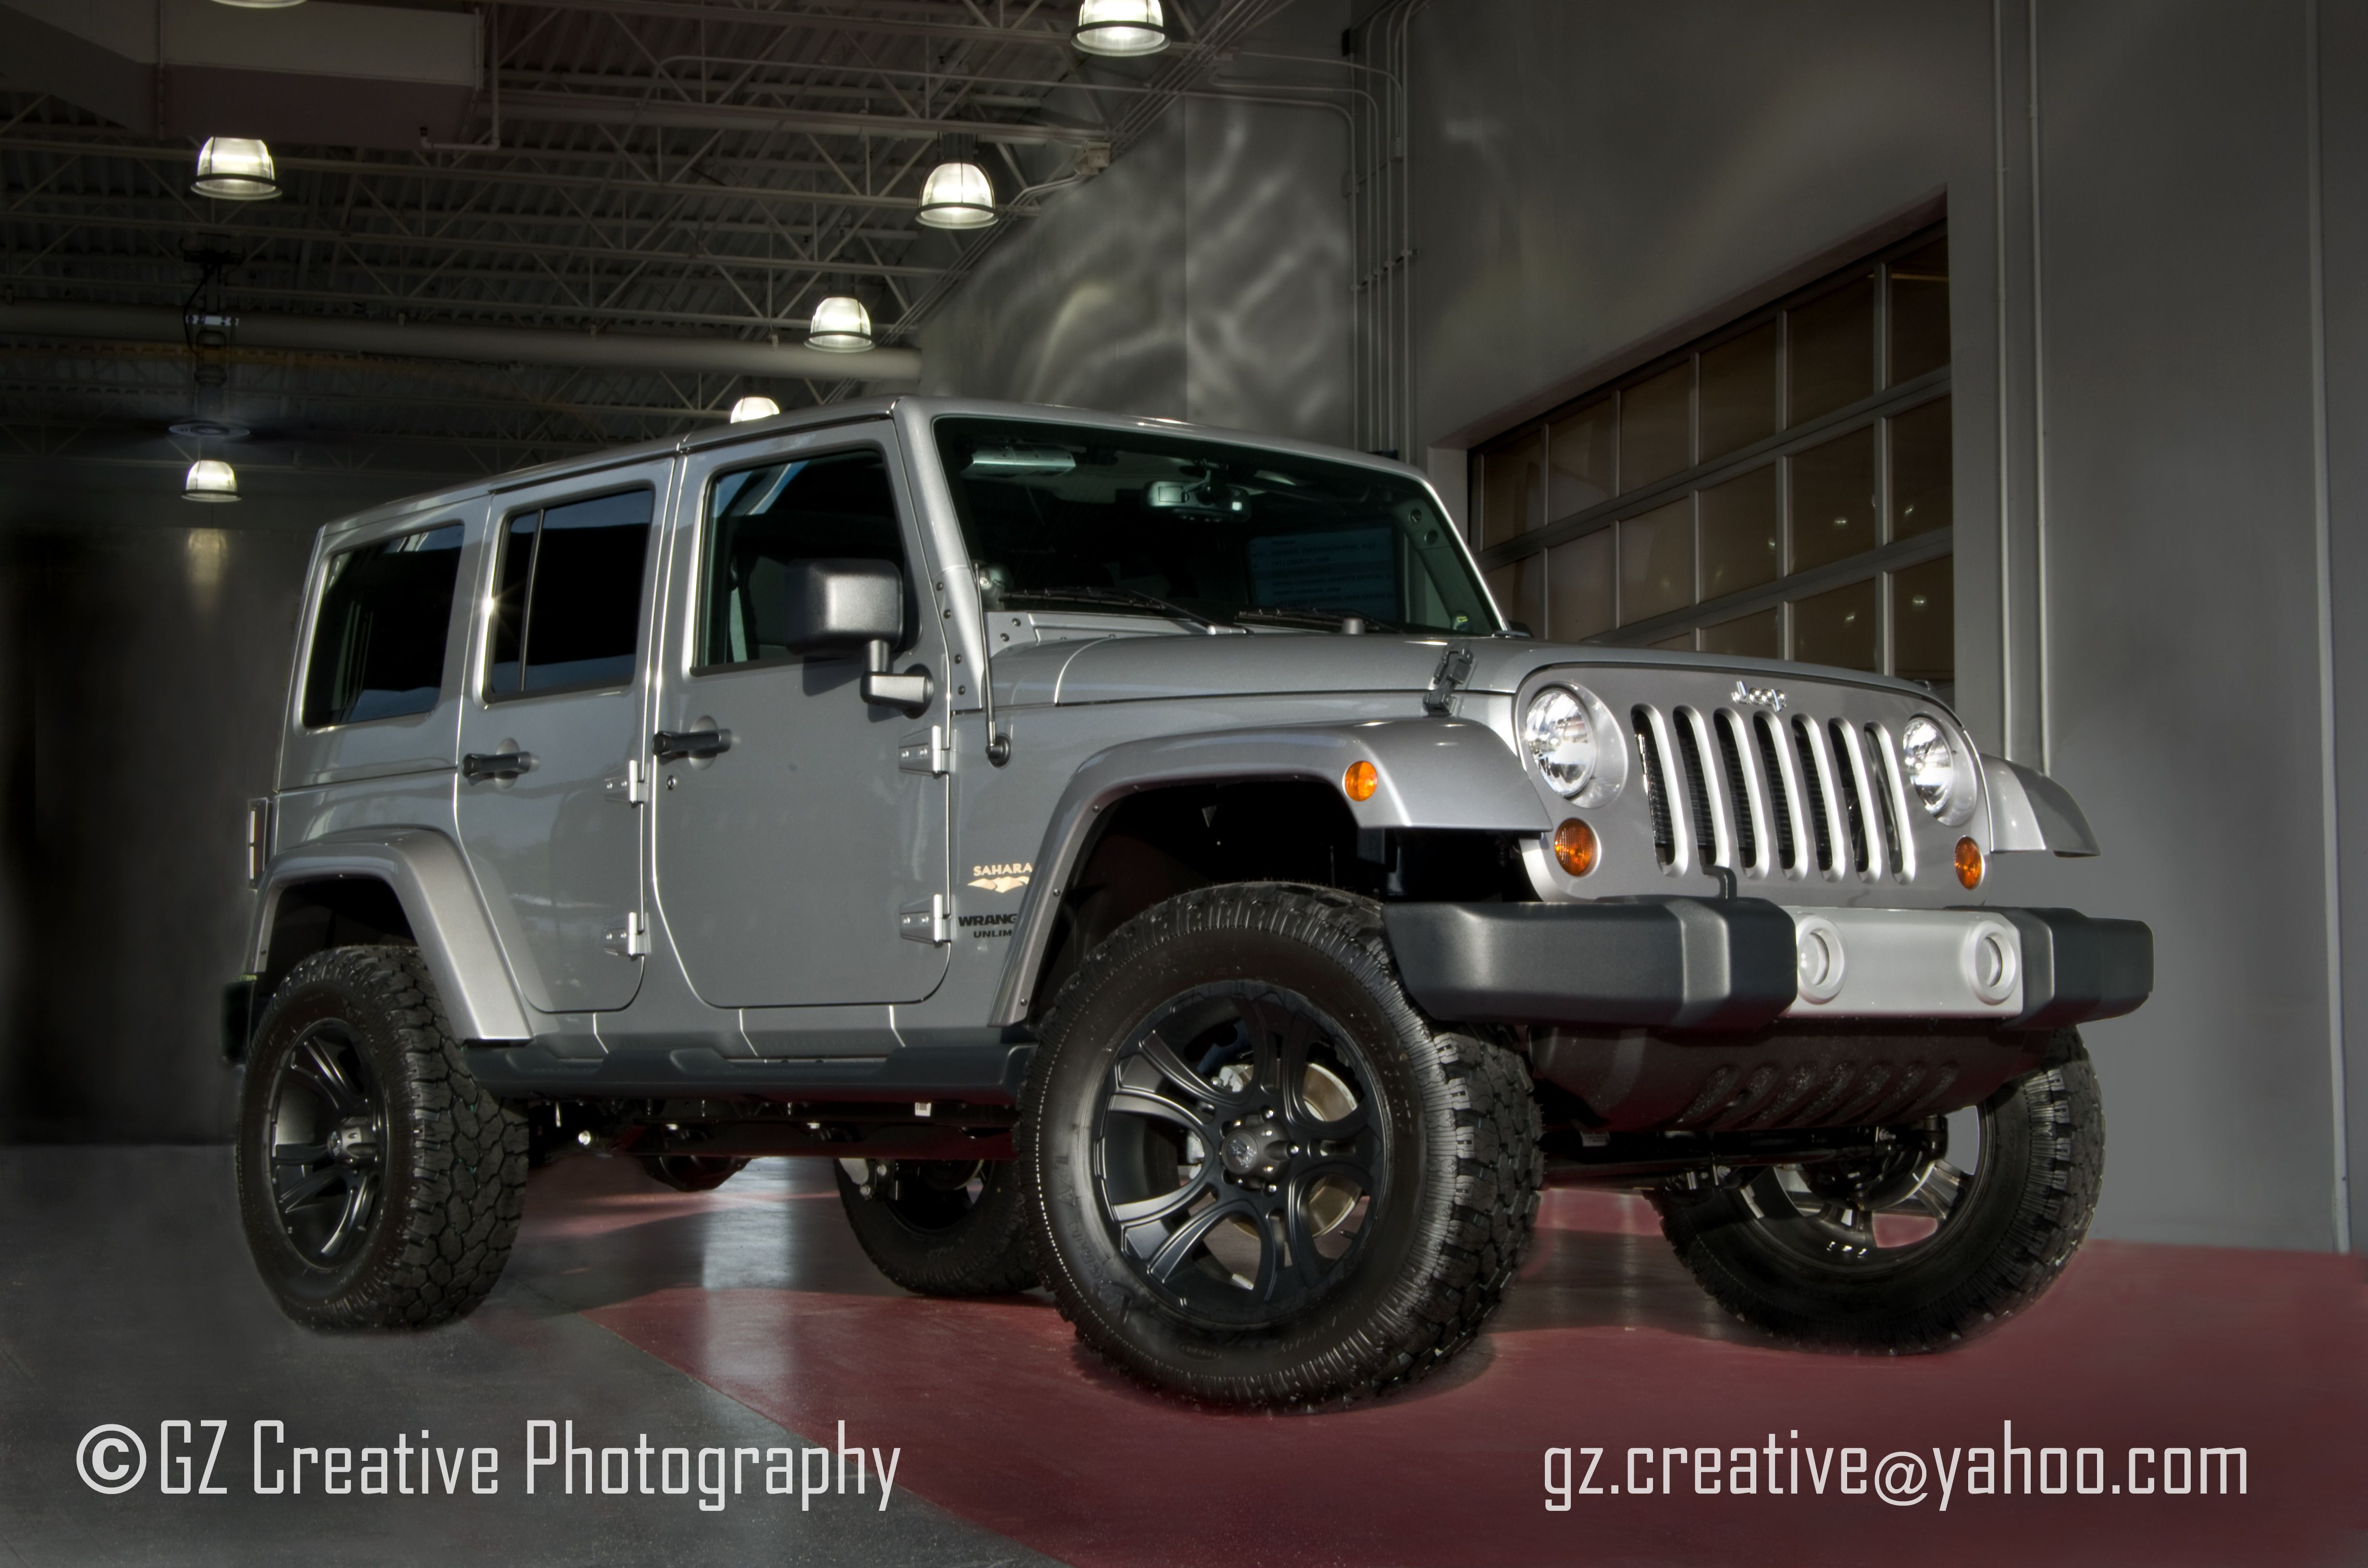 Pin By Jam Werks Florida On Jeep Wrangler Sahara Mods 4 Door Jeep Wrangler Jeep Wrangler Sahara Jeep Wrangler Unlimited